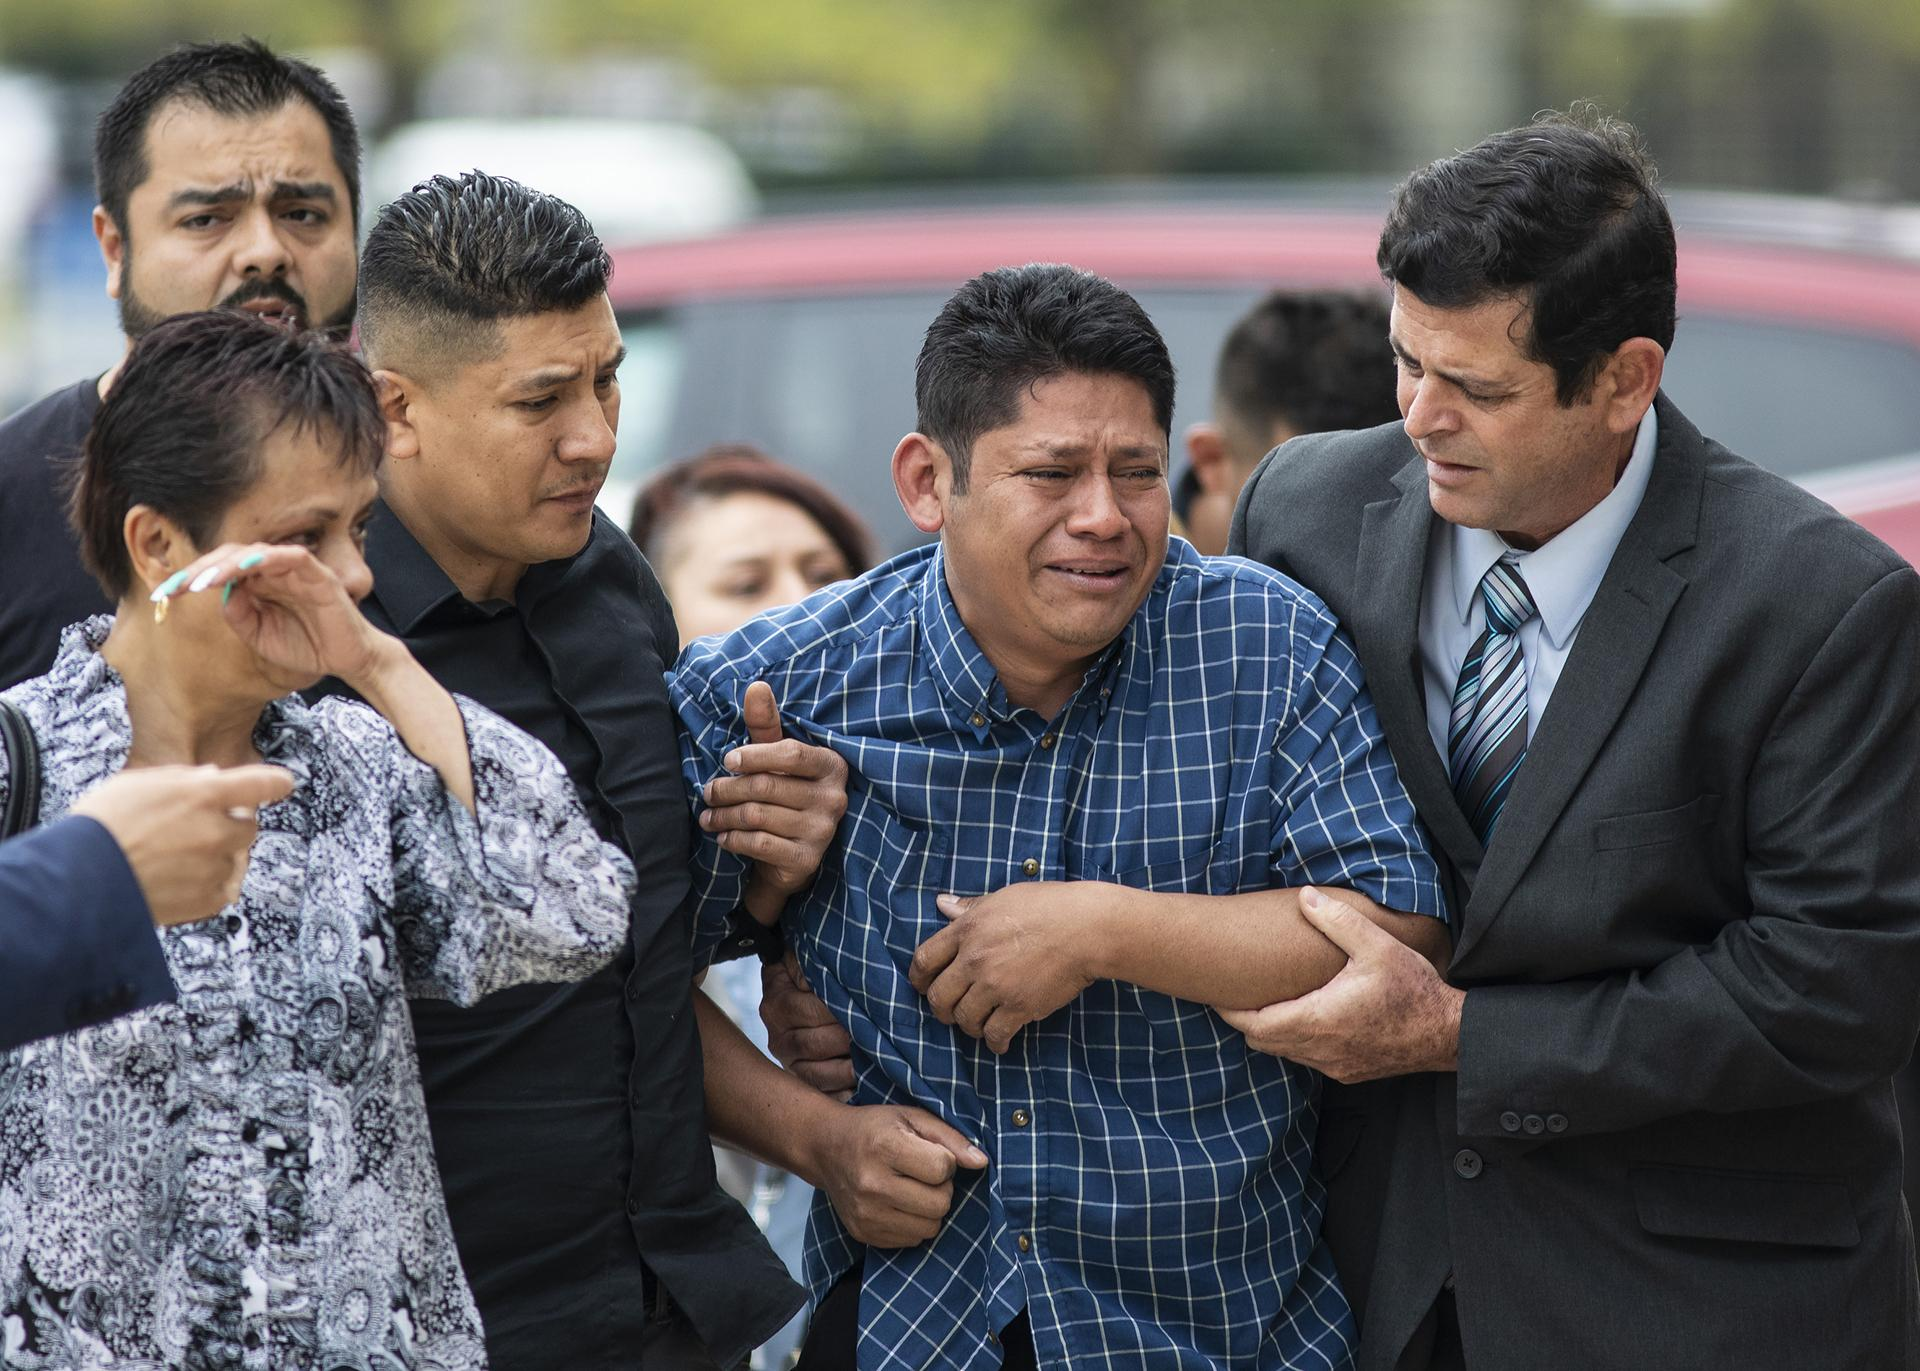 Arnulfo Ochoa, the father of Marlen Ochoa-Lopez, is surrounded by family members and supporters, as he walks into the Cook County medical examiner's office to identify his daughter's body, Thursday, May 16, 2019 in Chicago. (Ashlee Rezin / Chicago Sun-Times via AP)